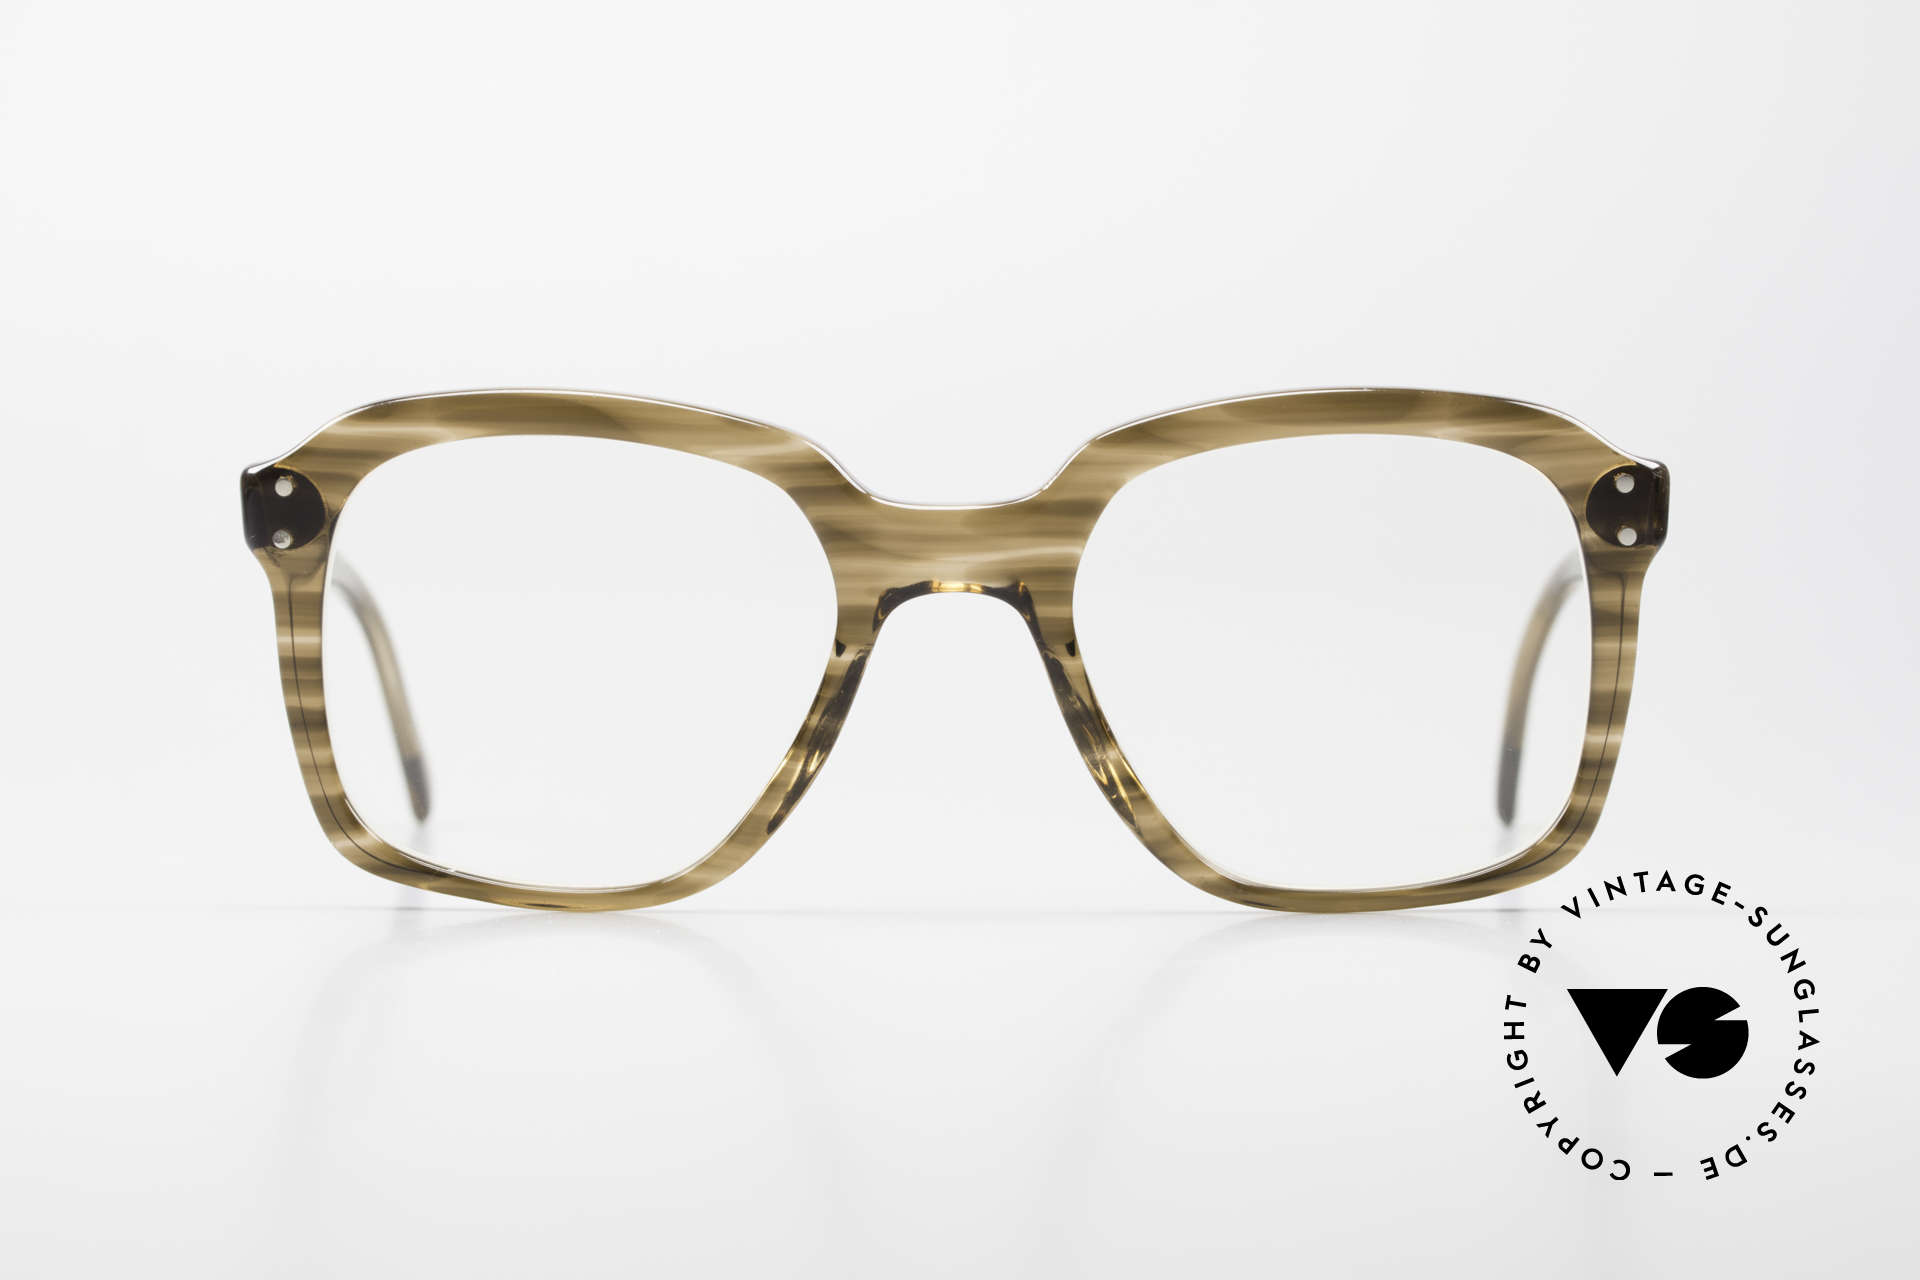 Metzler 449 Old 70's Original Nerd Glasses, a true classic at that time - reclaimed nerd style today, Made for Men